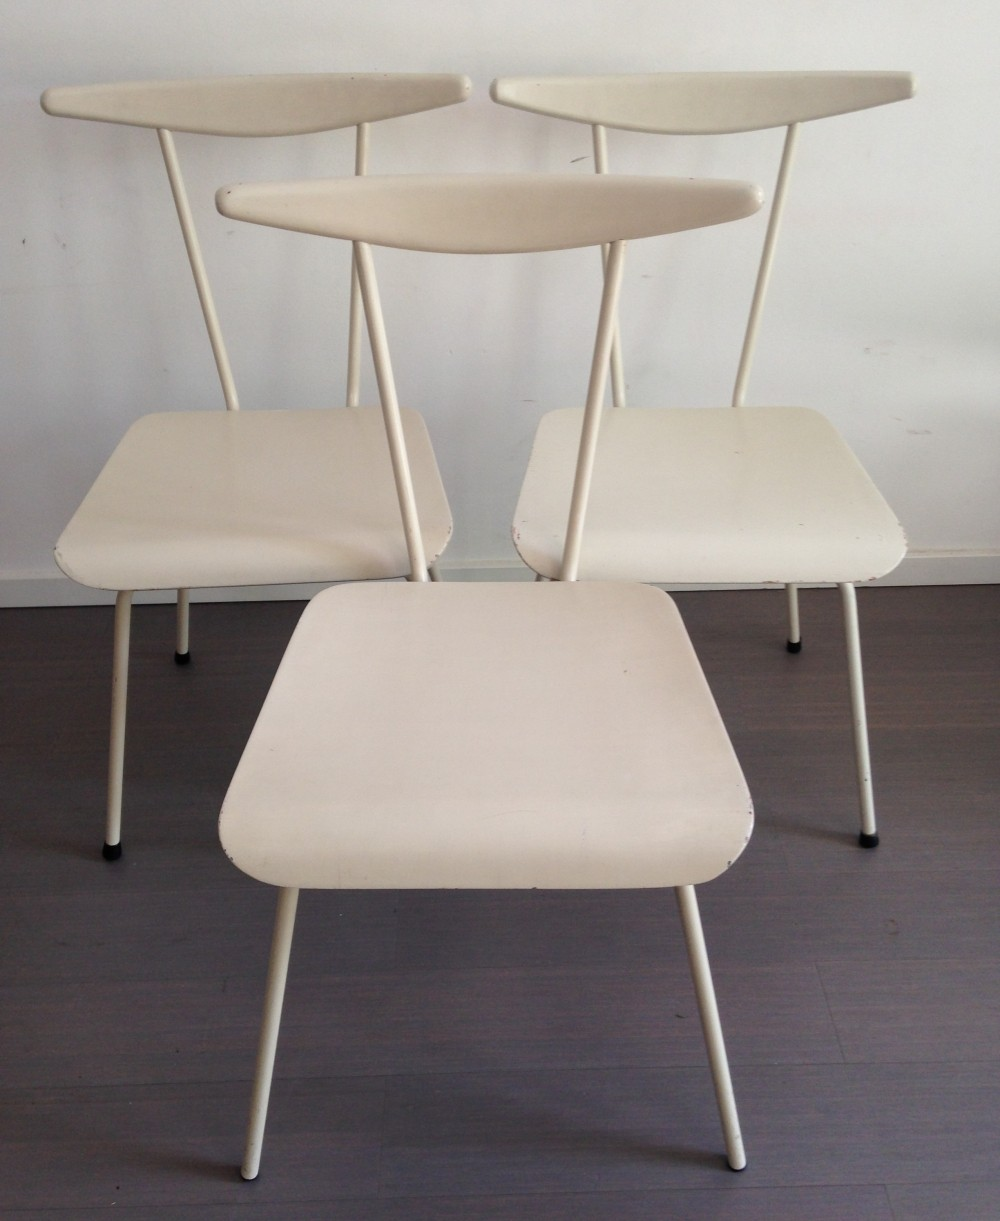 Set of 3 Dress boy dinner chairs by Wim Rietveld for Auping, 1950s